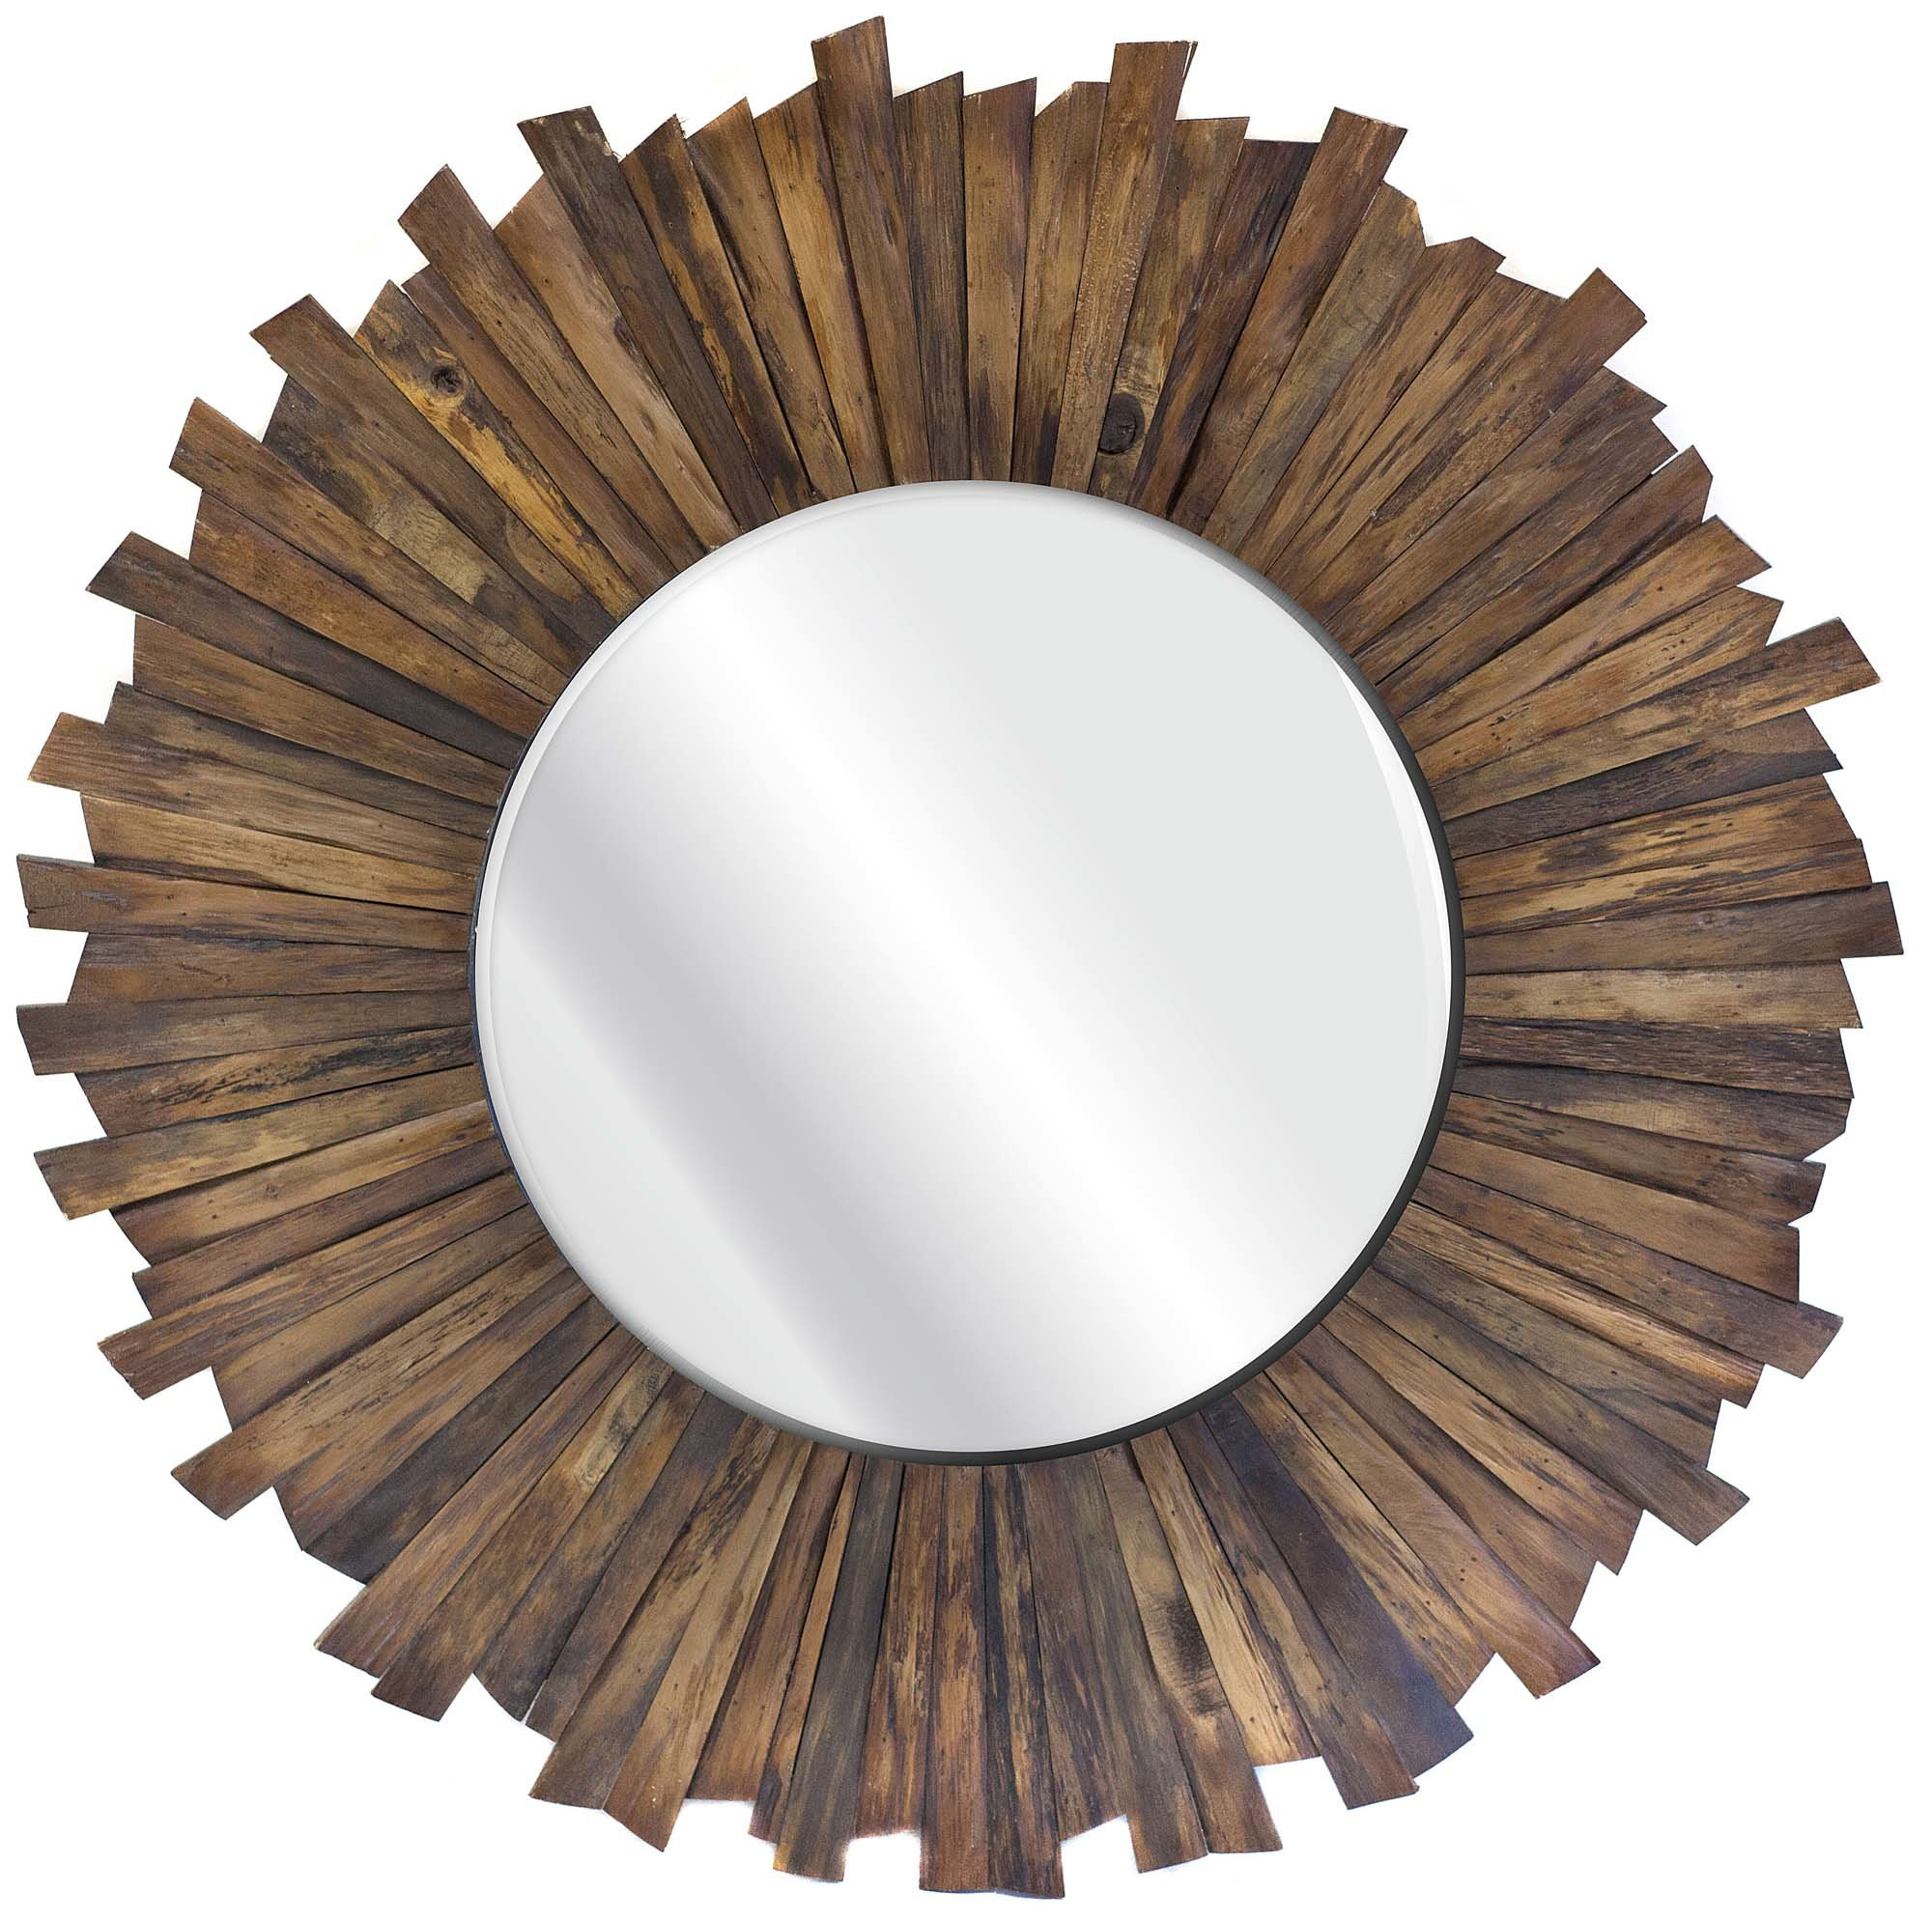 Widely Used Dandir Accent Mirror Pertaining To Perillo Burst Wood Accent Mirrors (View 20 of 20)